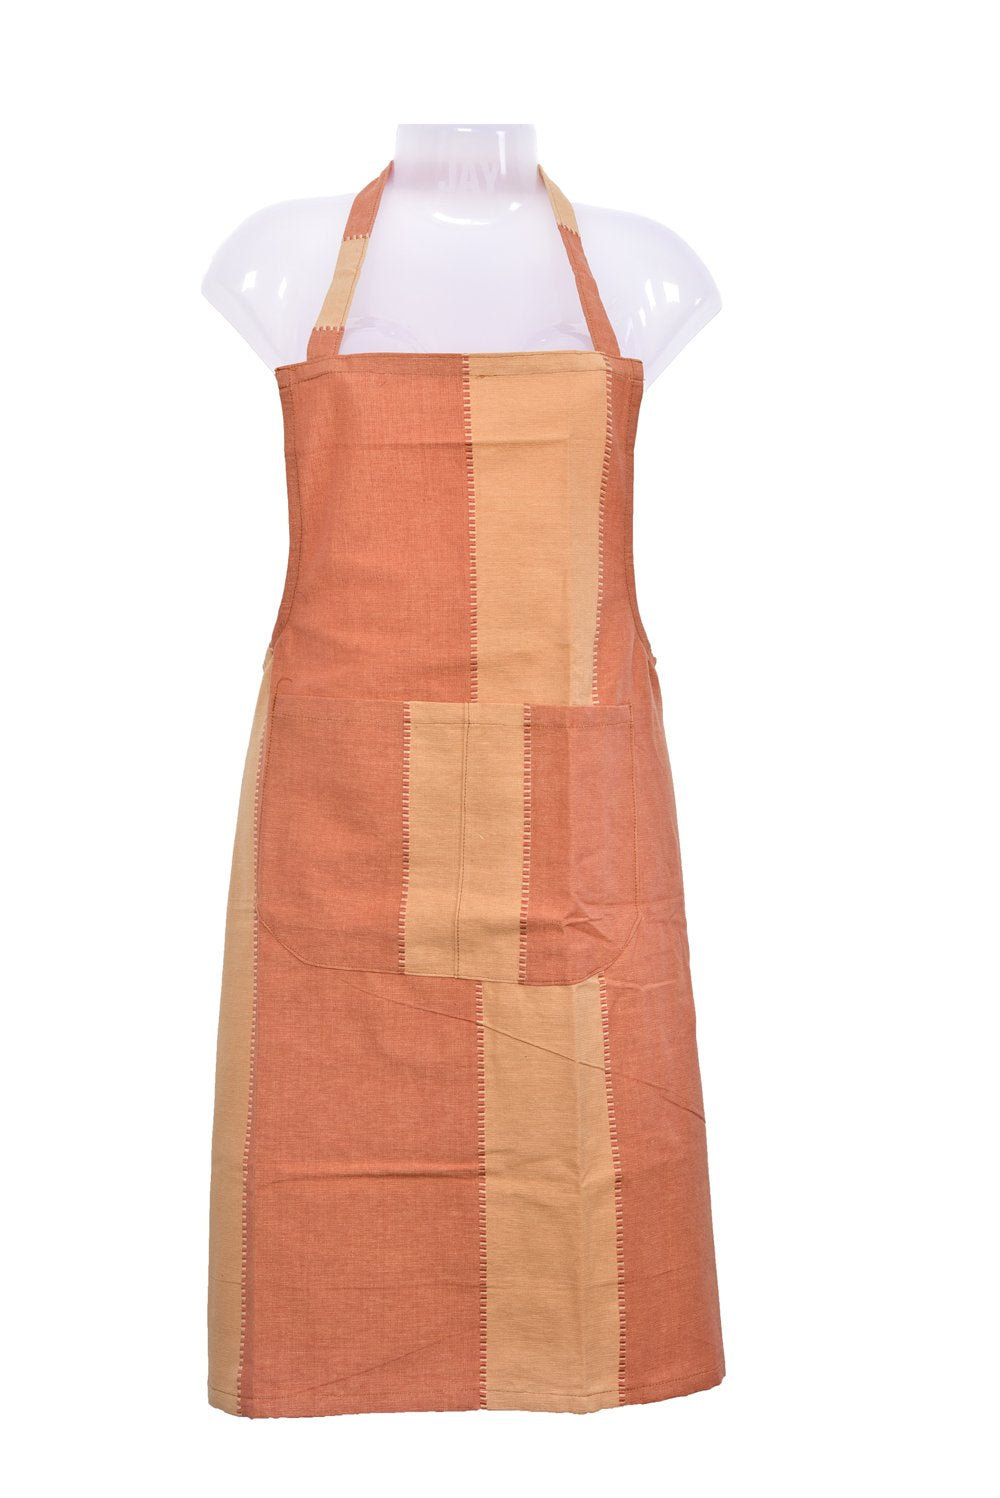 Cotton Apron with front center Pocket with long ties for Women/Men /Chef - 1 Pc